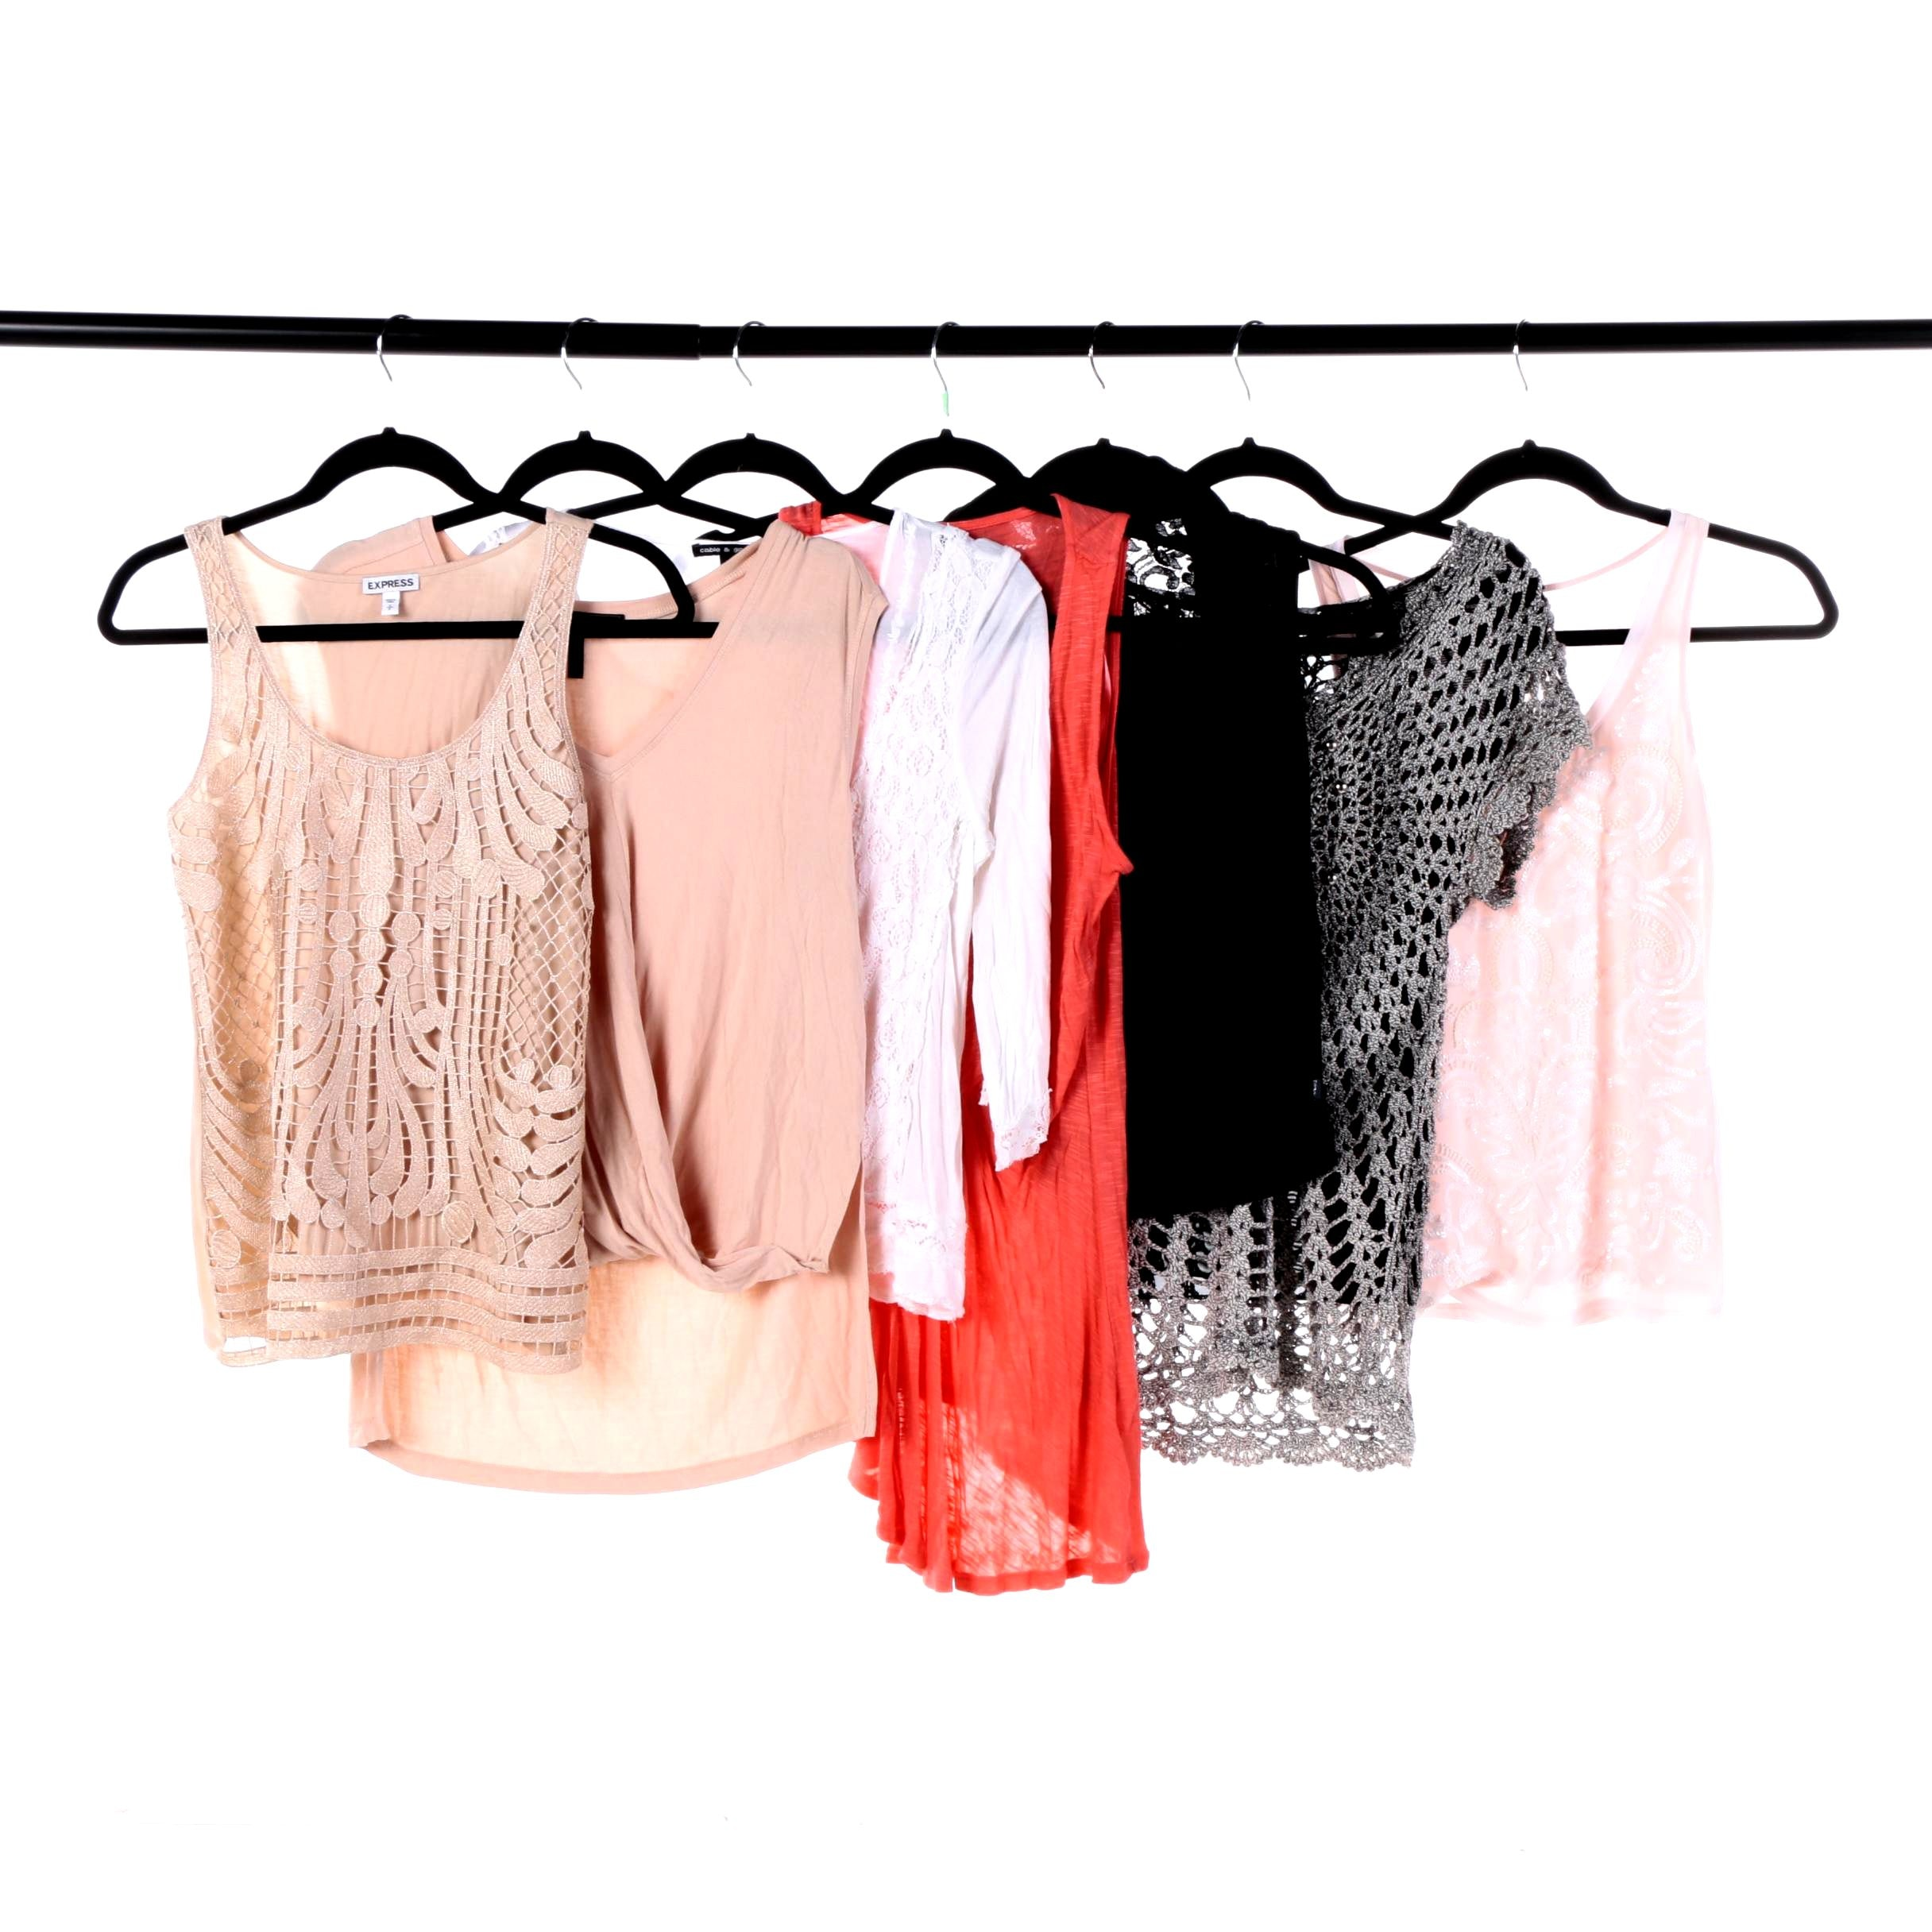 Women's Tops Including Express, BCBG, Alberto Makli and DKNY